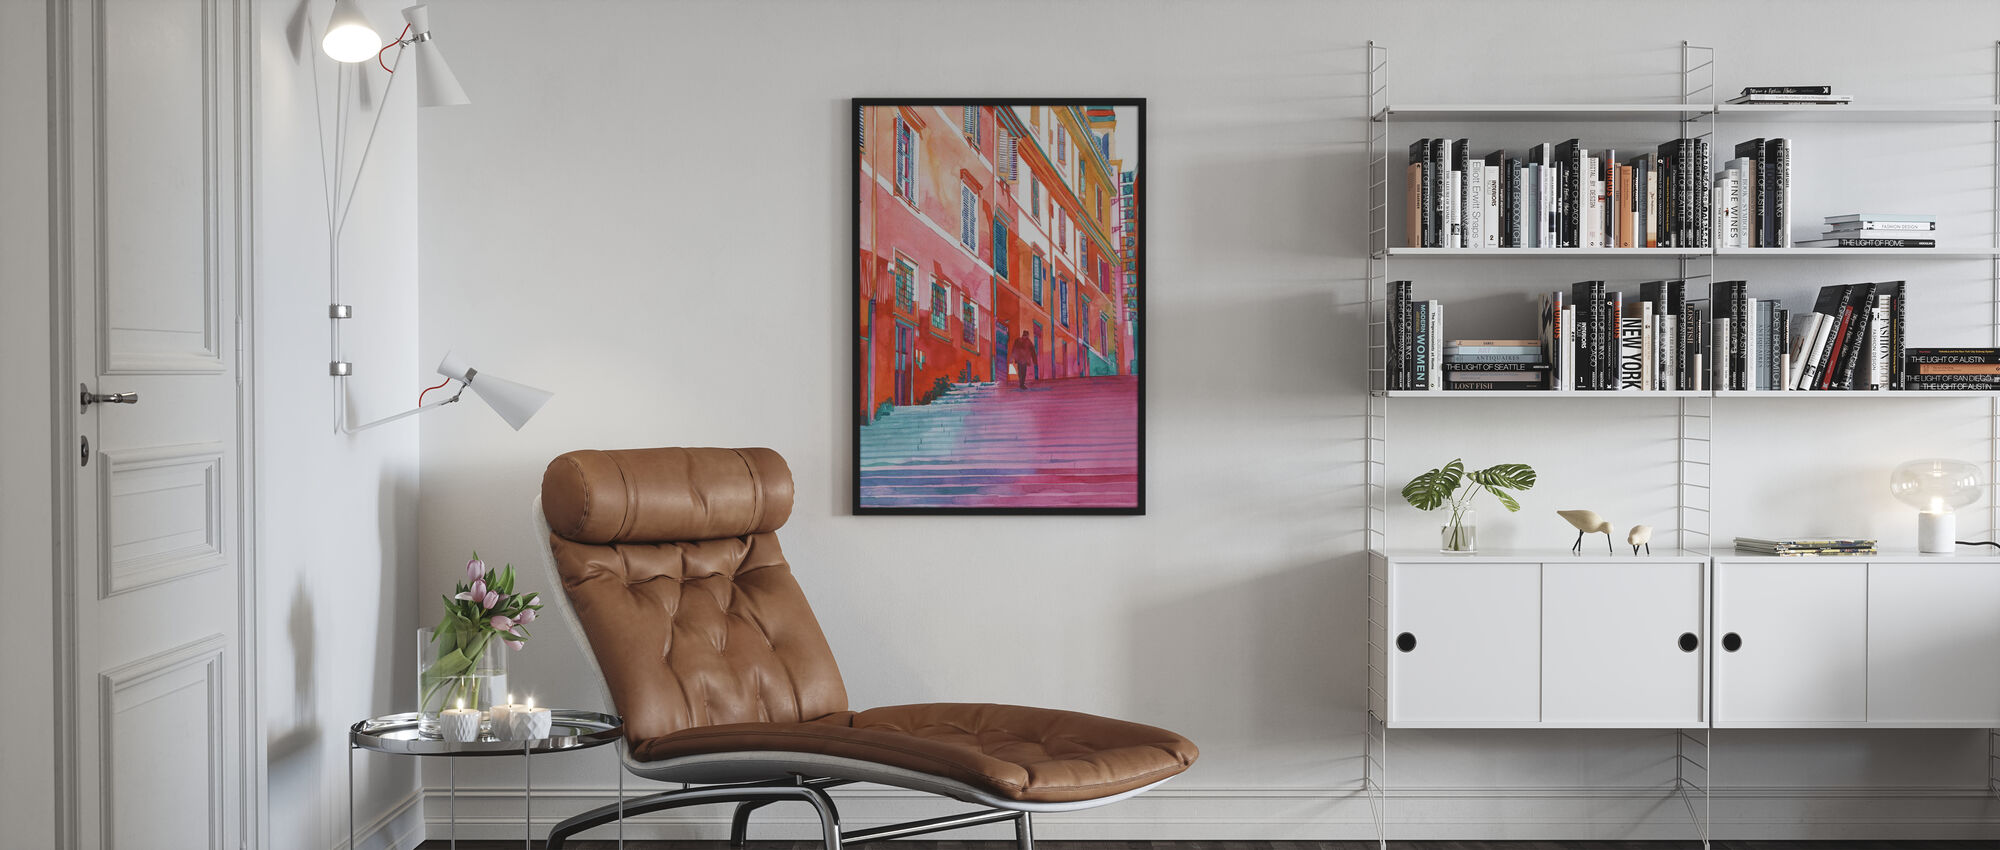 Hotel in Rome - Poster - Living Room